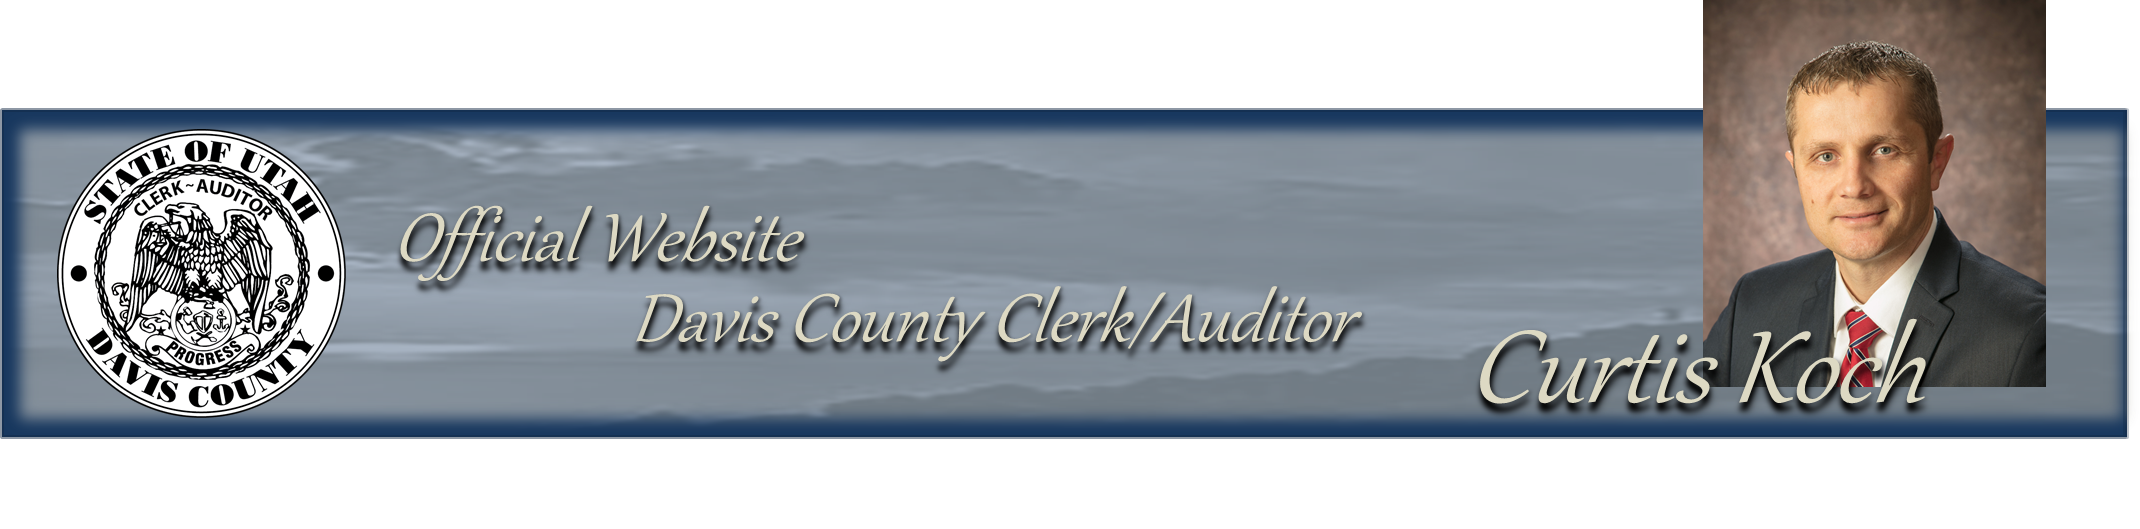 Official Website Davis County Clerk/Auditor Curtis Koch